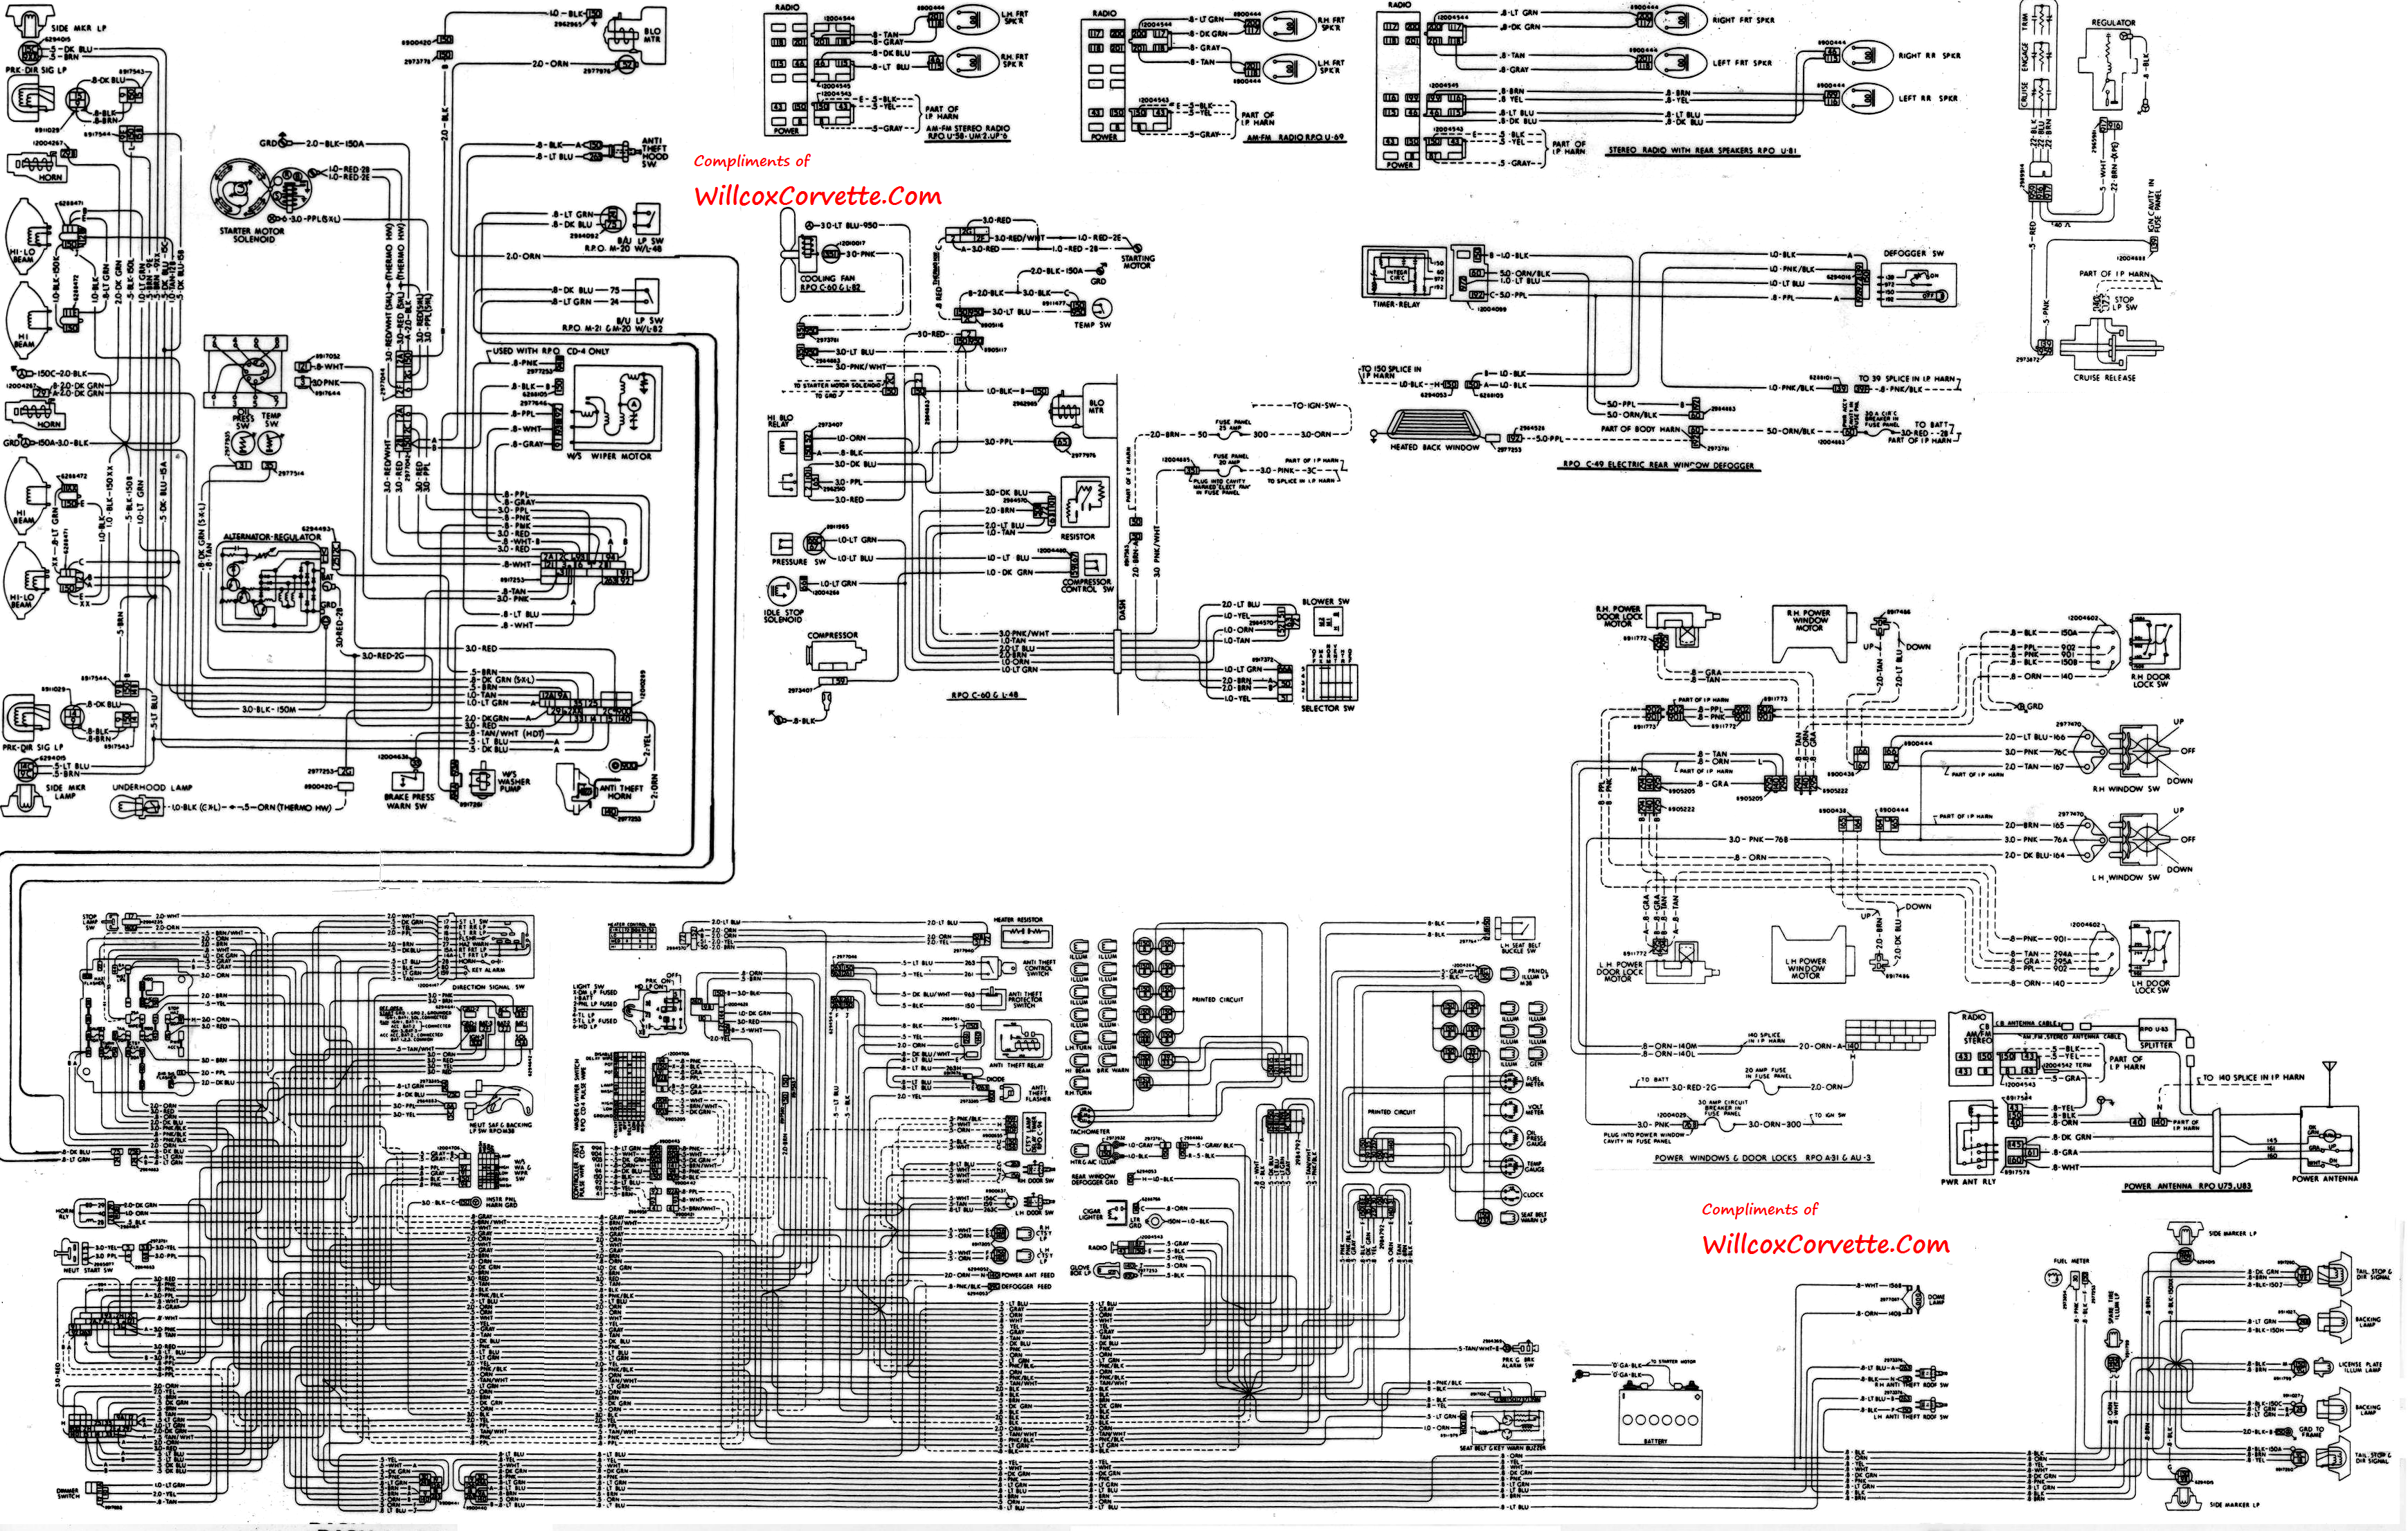 1979 wire diagram 1979 corvette tracer wiring diagram tracer schematic willcox 1979 corvette wiring diagram at n-0.co